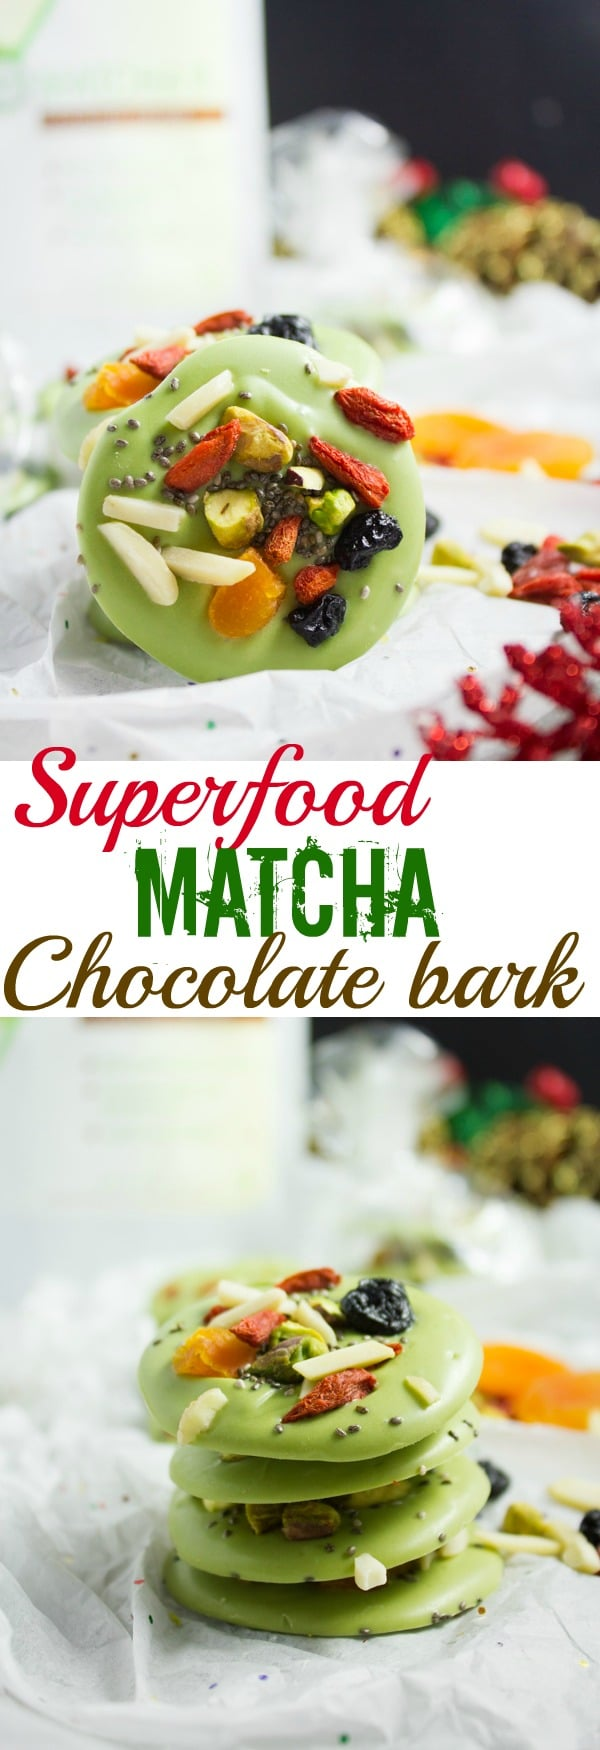 If you're looking for a perfect homemade Holiday gift this year make this Matcha Green Tea White Chocolate Bark topped with assorted superfoods like chia seeds, dried blueberries, and goji berries! #chocolatebark, #matcha, #homemadegifts, #ediblegifts, #superfood